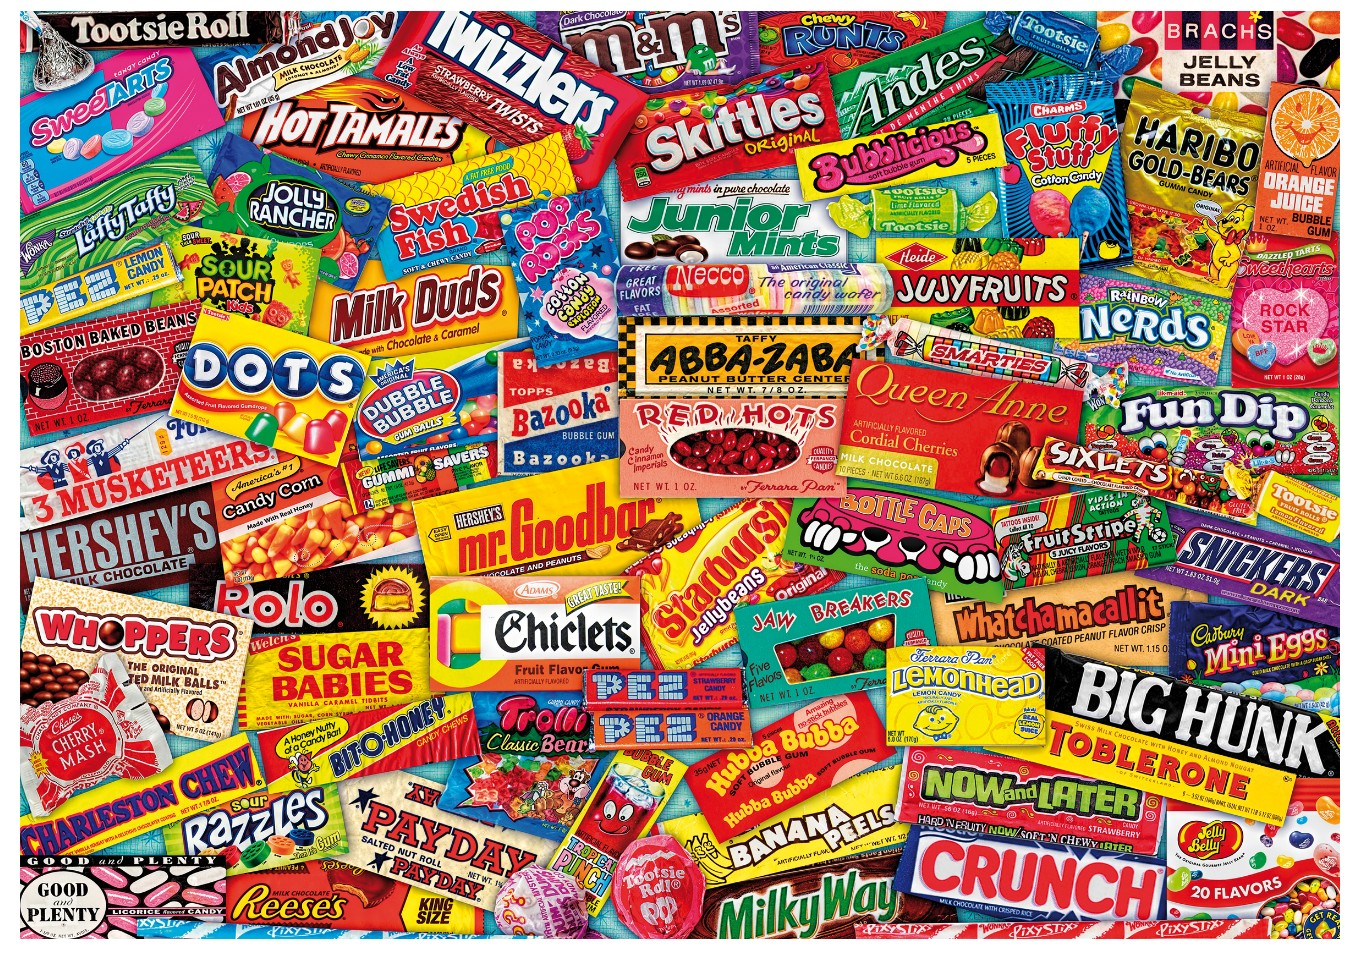 wentworth-holzpuzzle-crazy-candy-250-teile-puzzle-wentworth-752513